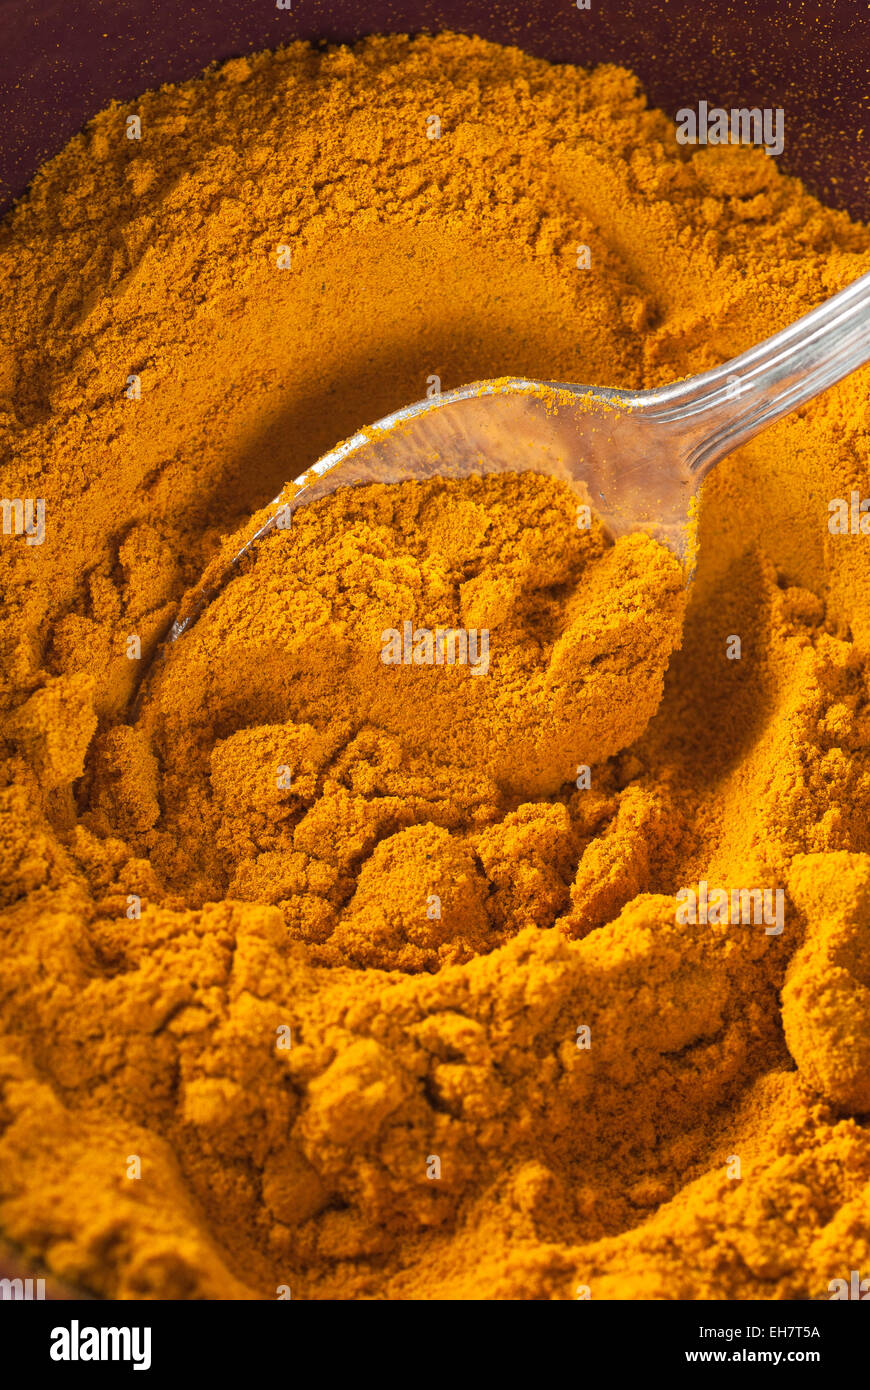 A spoon ful of ground turmeric. - Stock Image